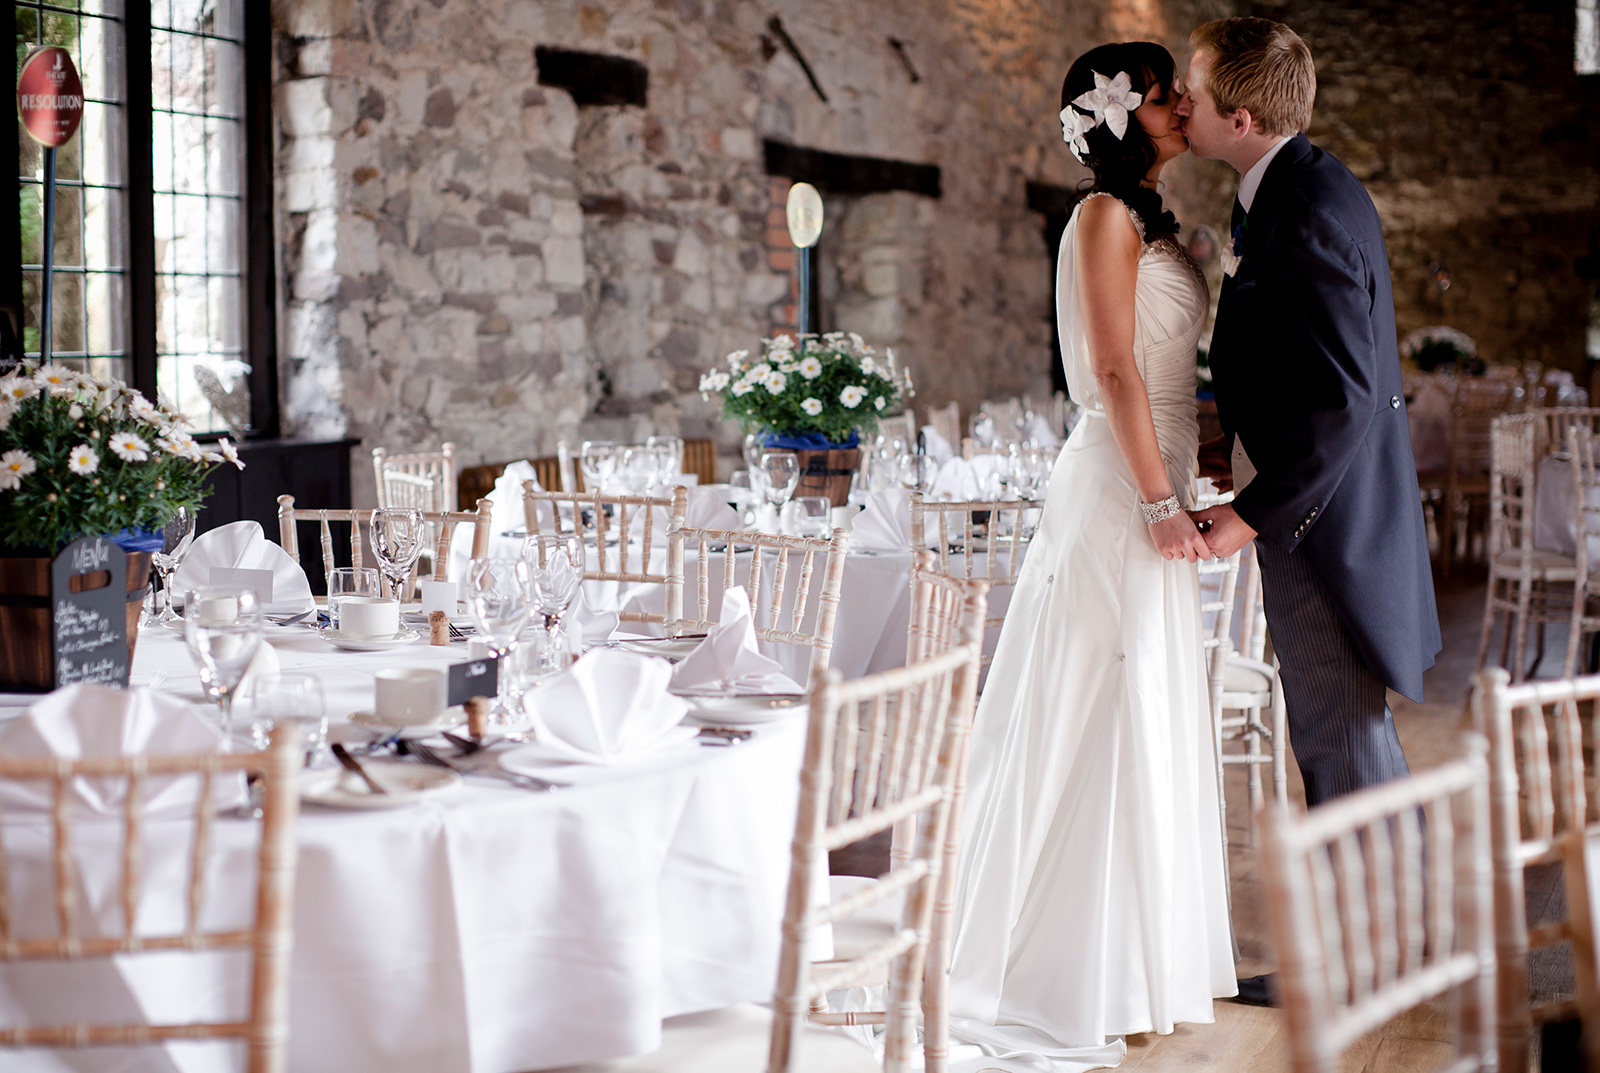 Planning your wedding? Visit us at the Cottrell Park Wedding Showcase this June